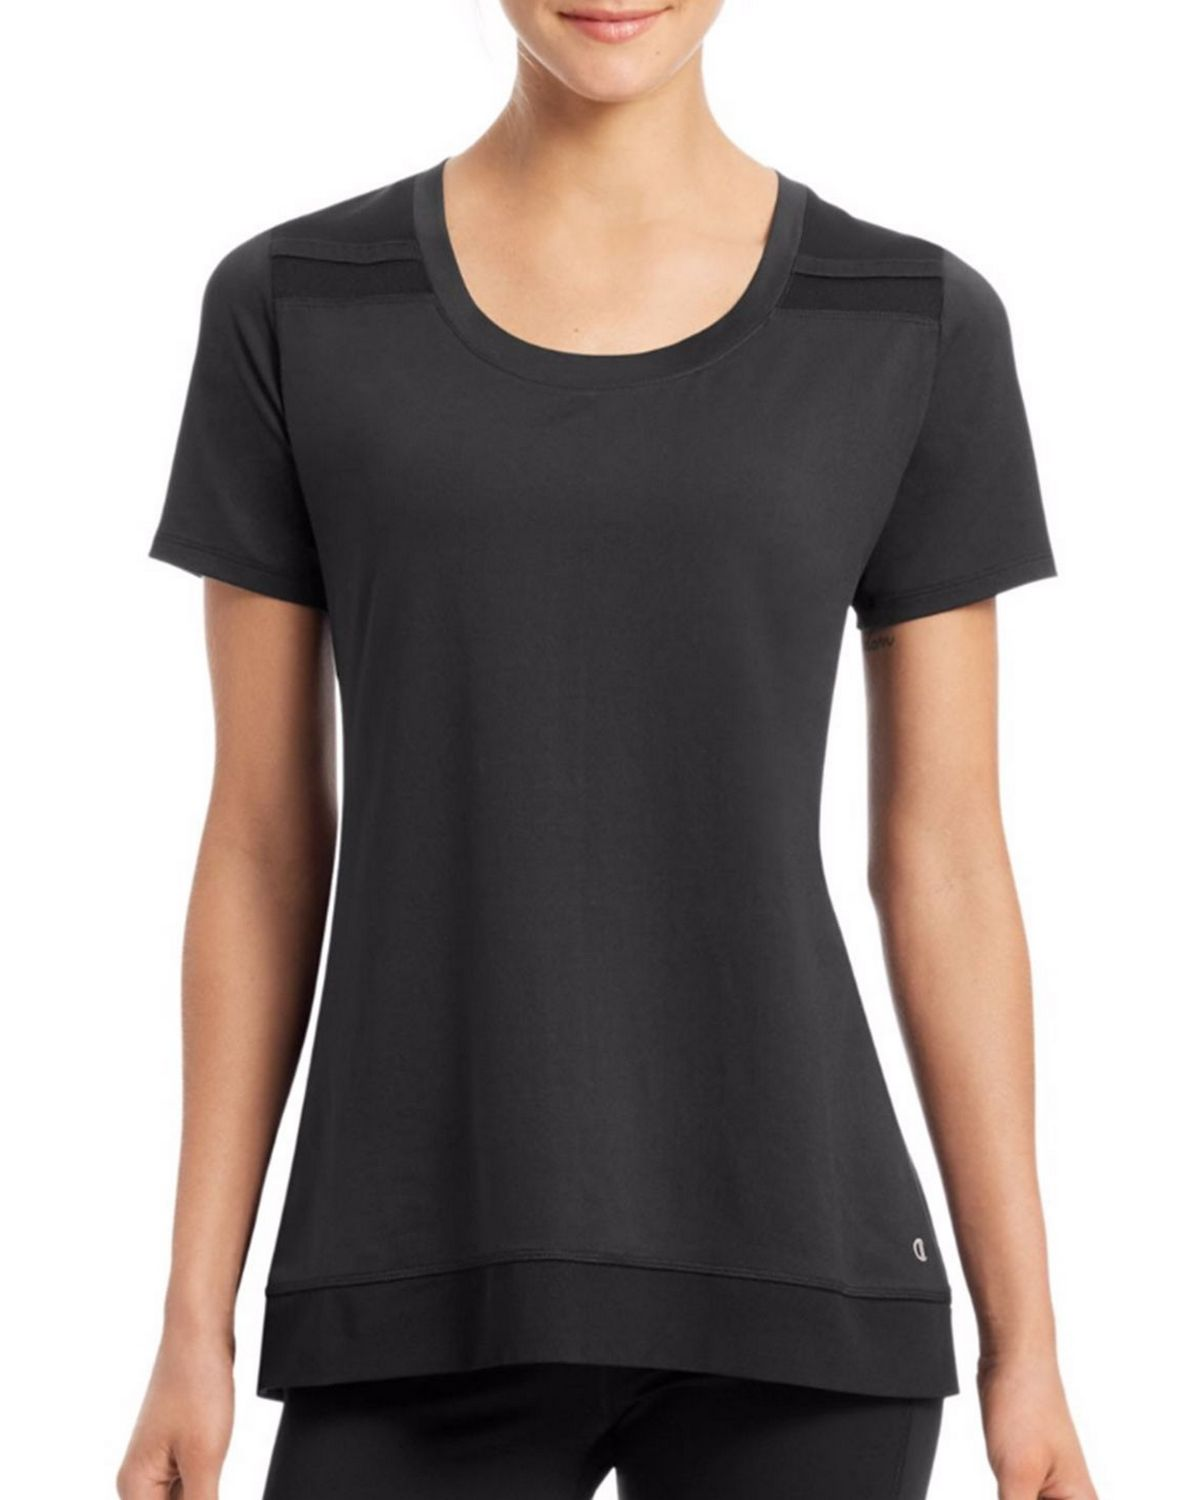 Champion W29917 Womens Short Sleeve Tee - Black - L W29917